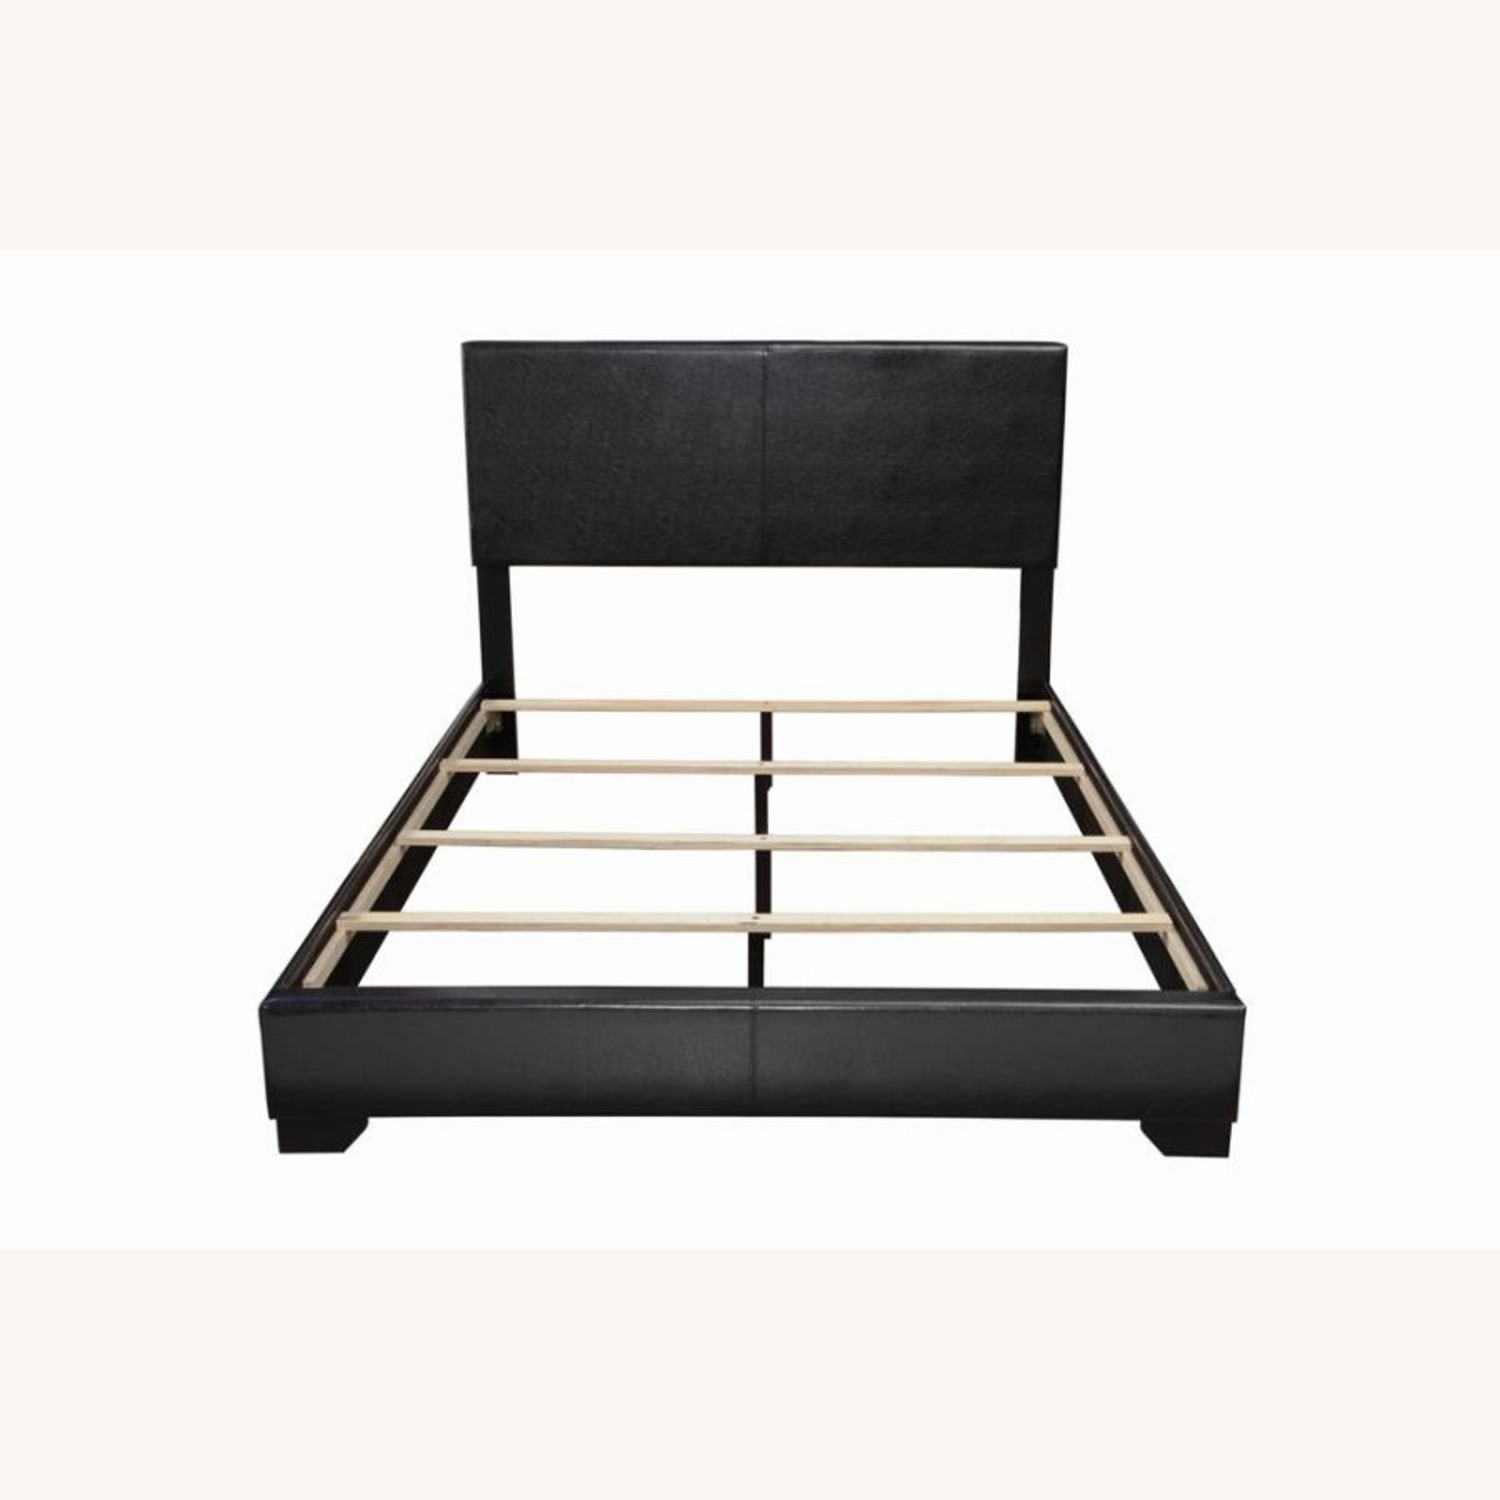 Queen Bed In Black Leatherette W/ Hardwood Legs - image-2